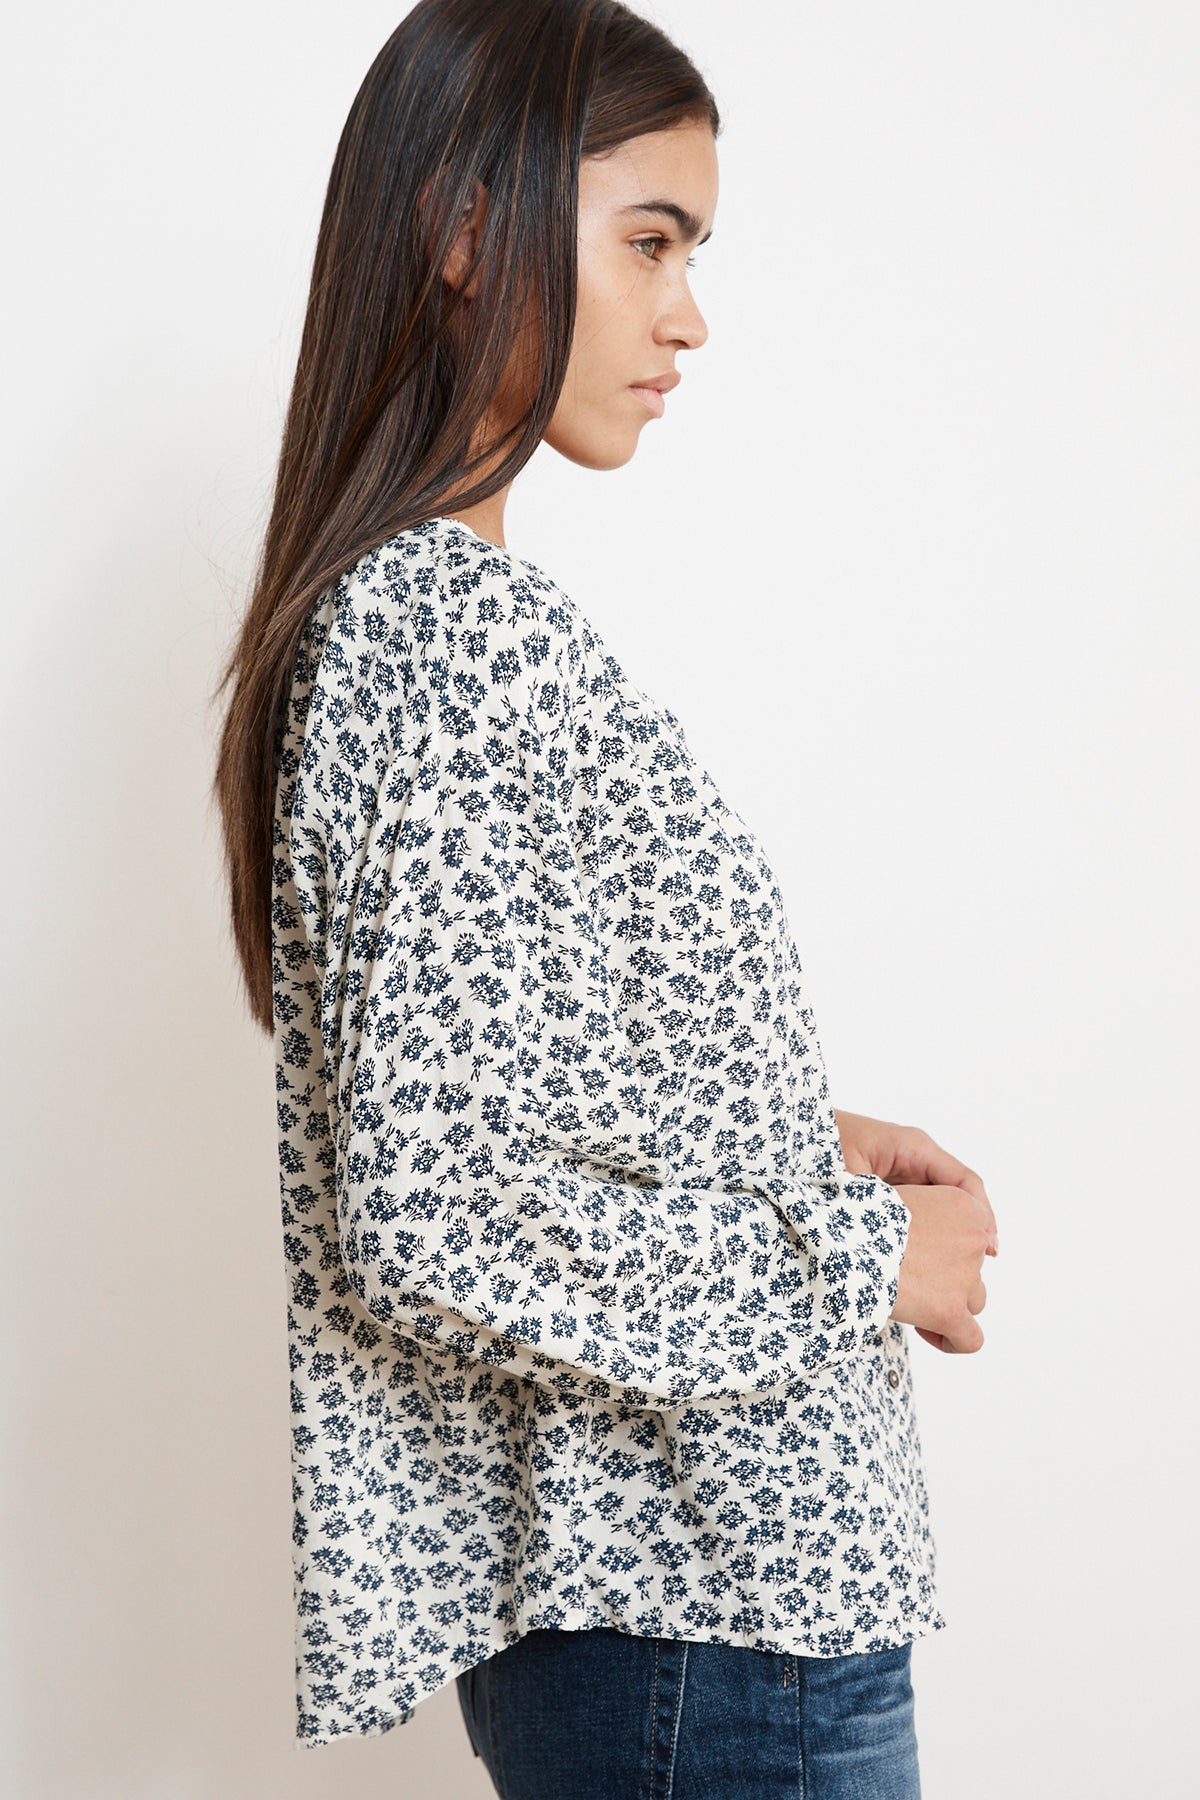 KISSAN SHEER PRINTED GAUZE BUTTON UP BLOUSE